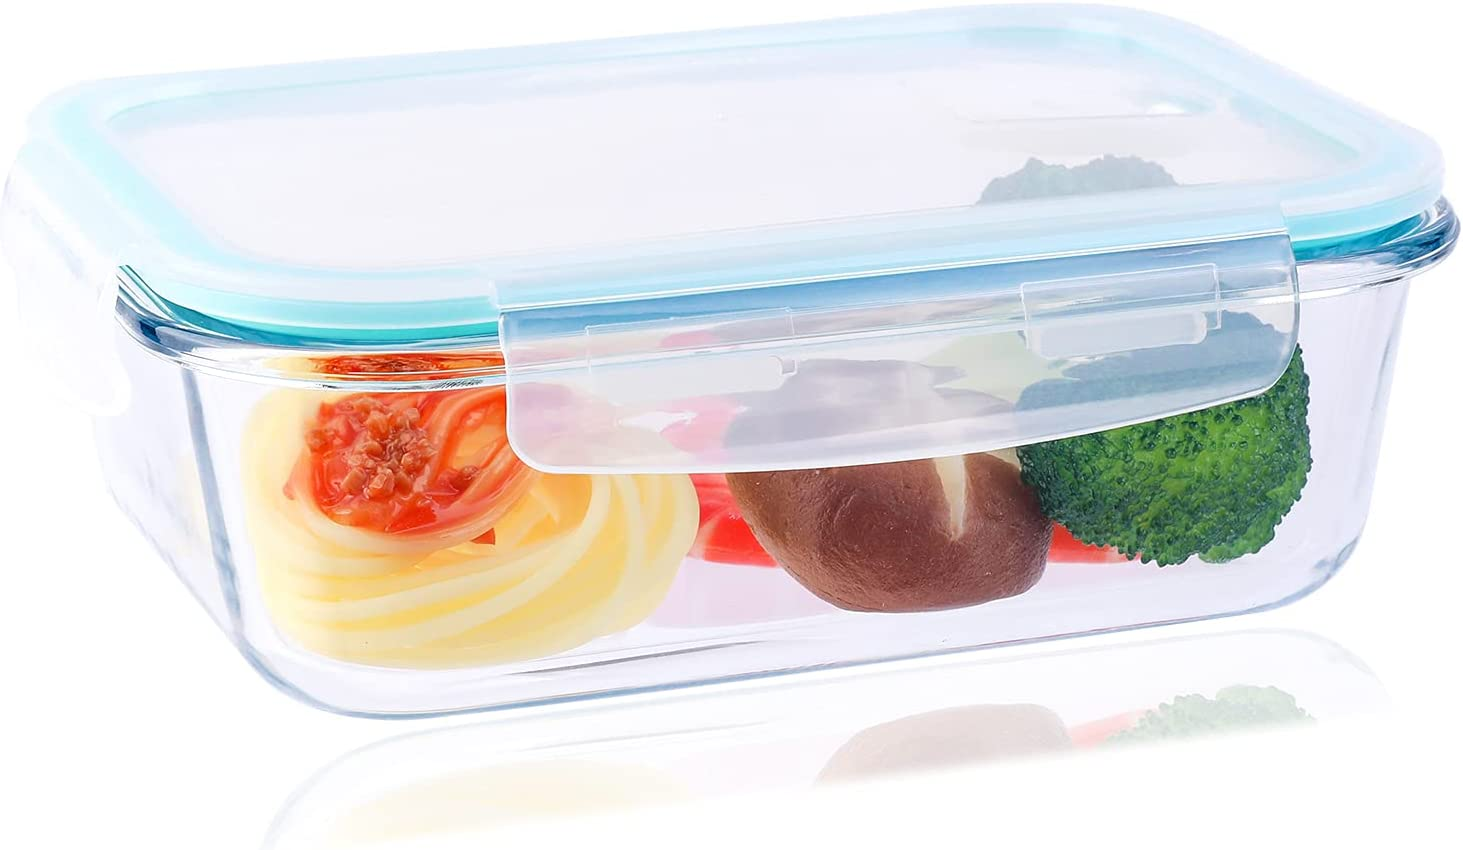 23OZ Glass Lunch Containers, Glass Storage Containers with Lids, Glass Meal Prep Containers Reusable for Office Workers Prepare Meals and Snacks